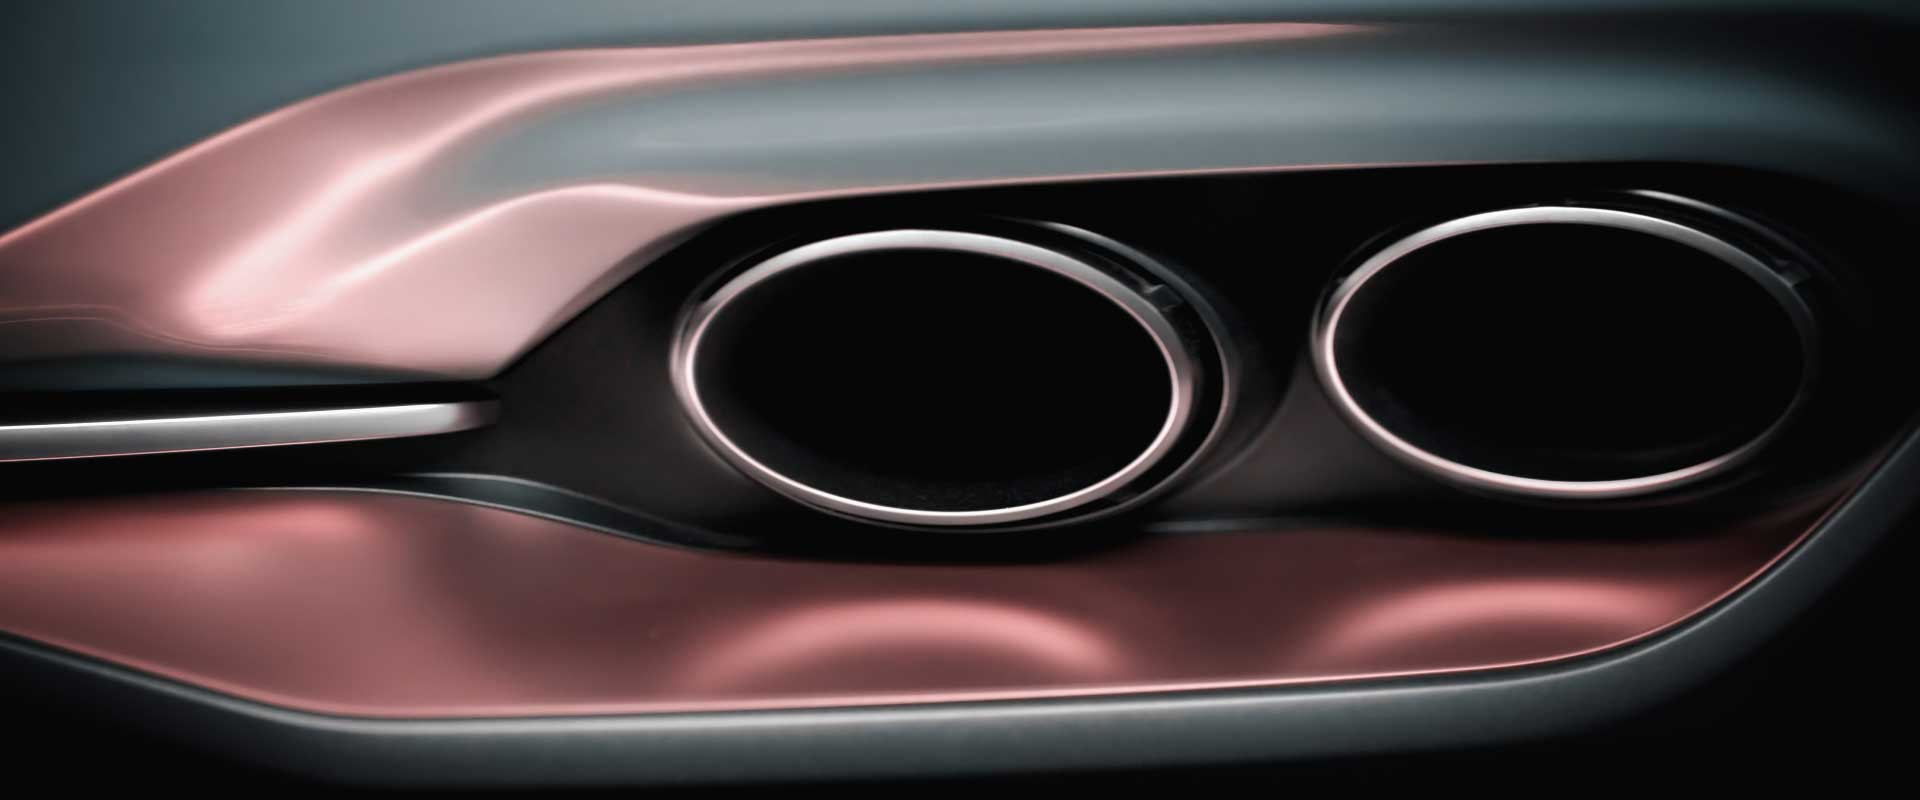 Detail exhaust pipes. Still from Hyundai Genesis commercial.